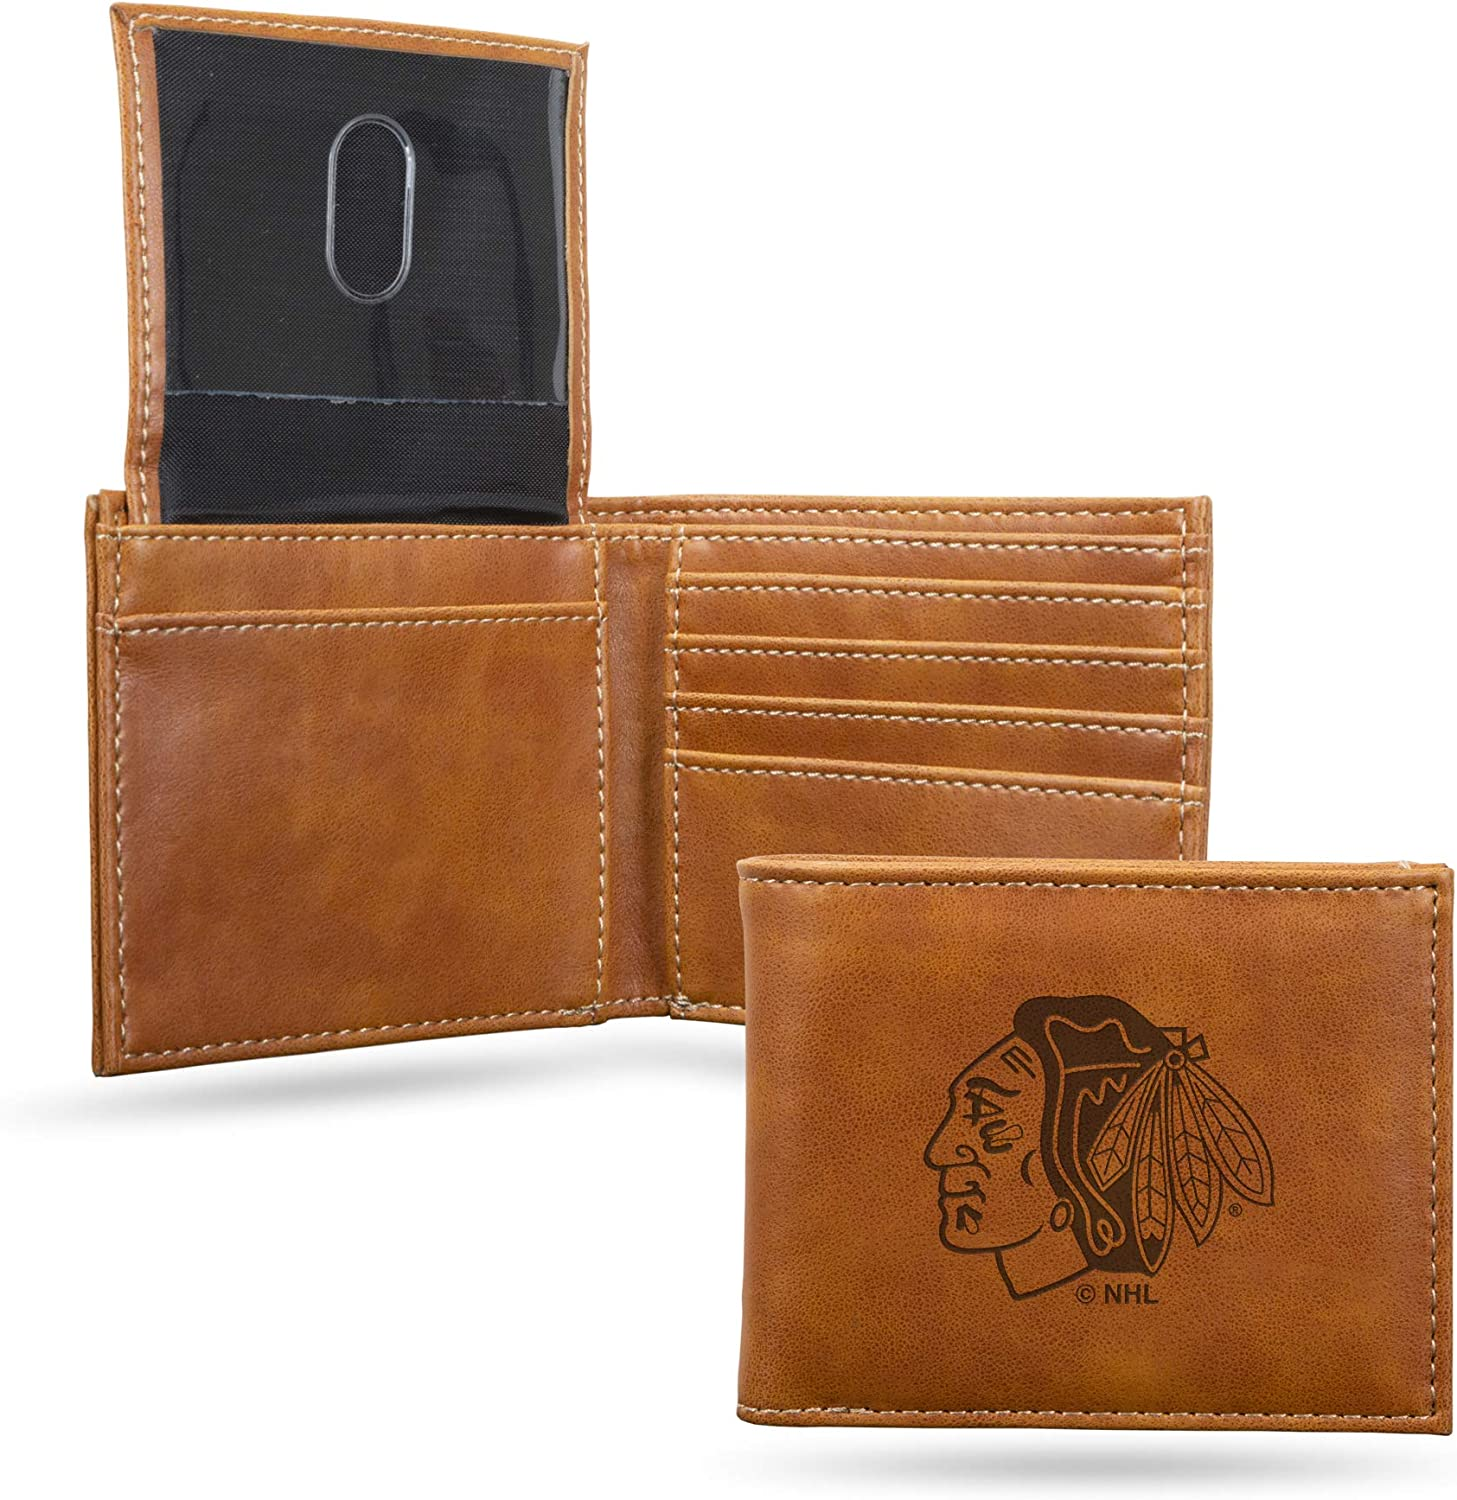 NHL Outlet SALE Rico Industries Laser Engraved Blac Wallet Max 70% OFF Billfold Chicago